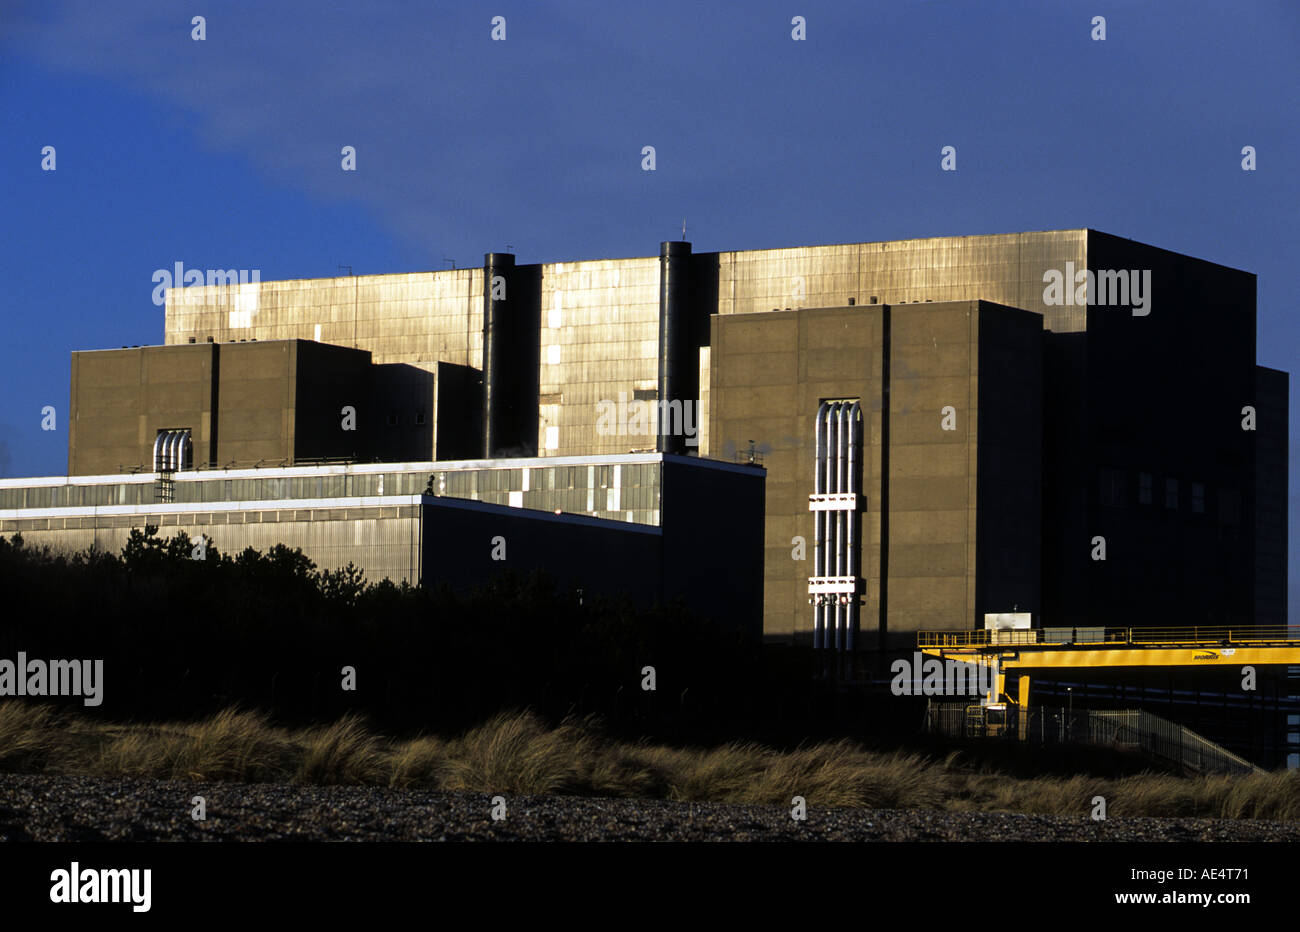 Sizewell A nuclear power station which is now going through decommissioning, Suffolk, UK. - Stock Image